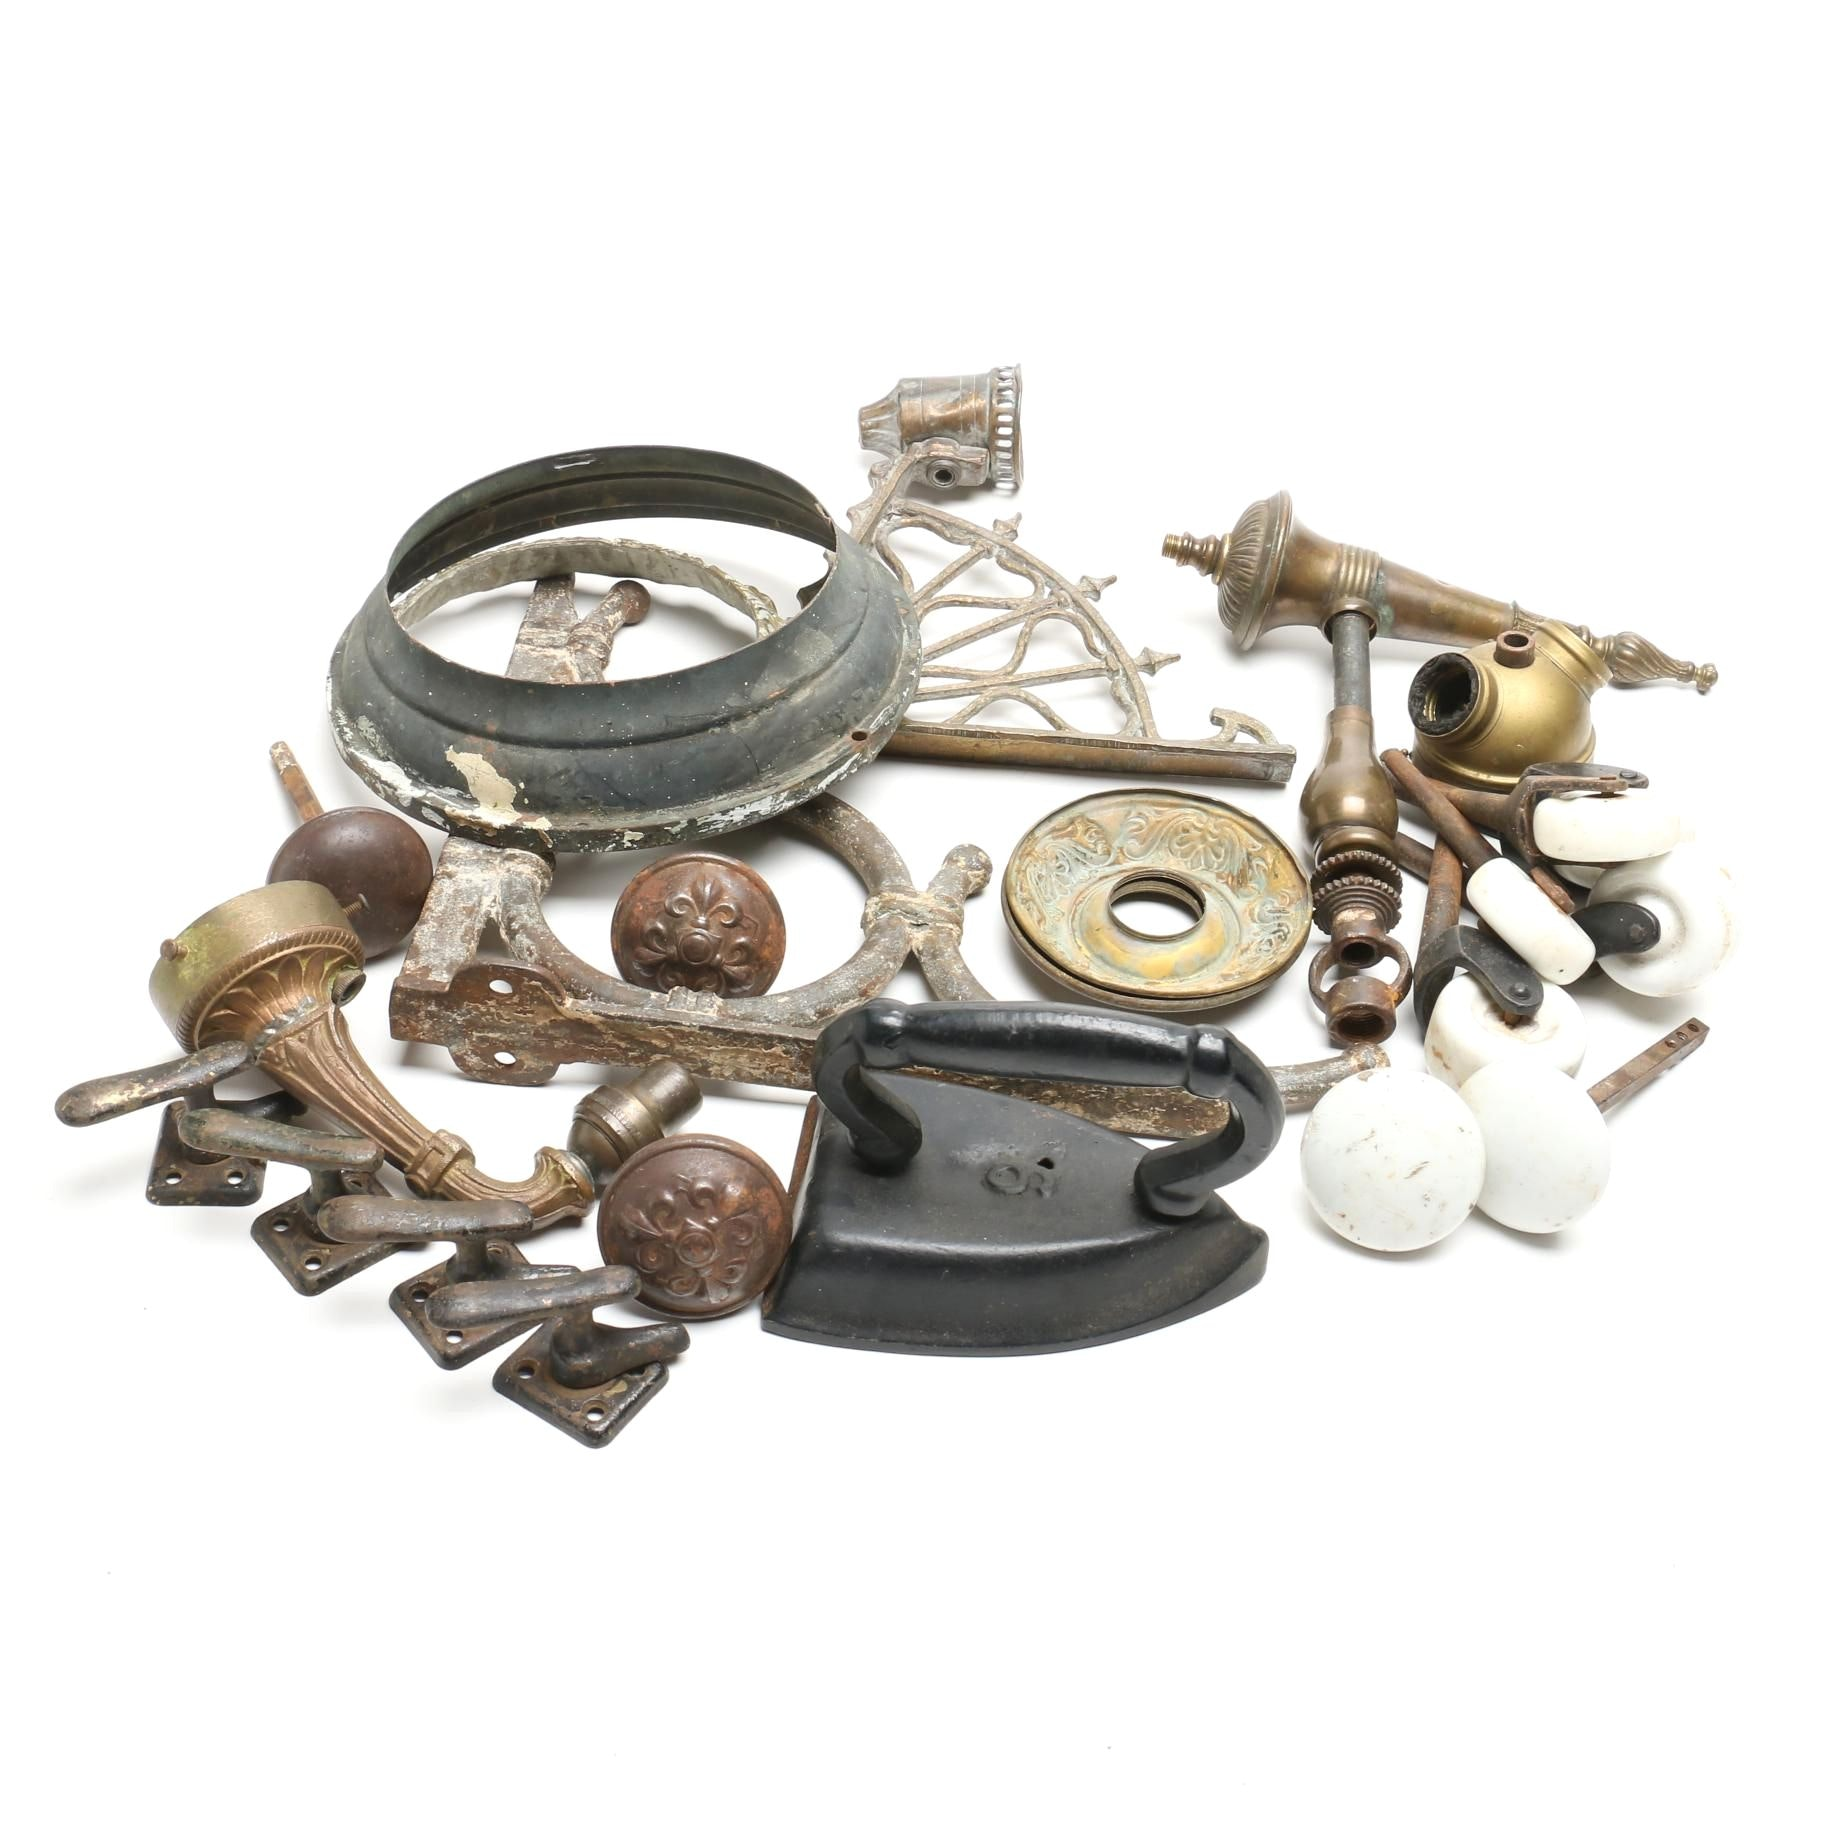 A Collection of Iron and Brass Wall Sconces, Door Knobs, Wheels and More